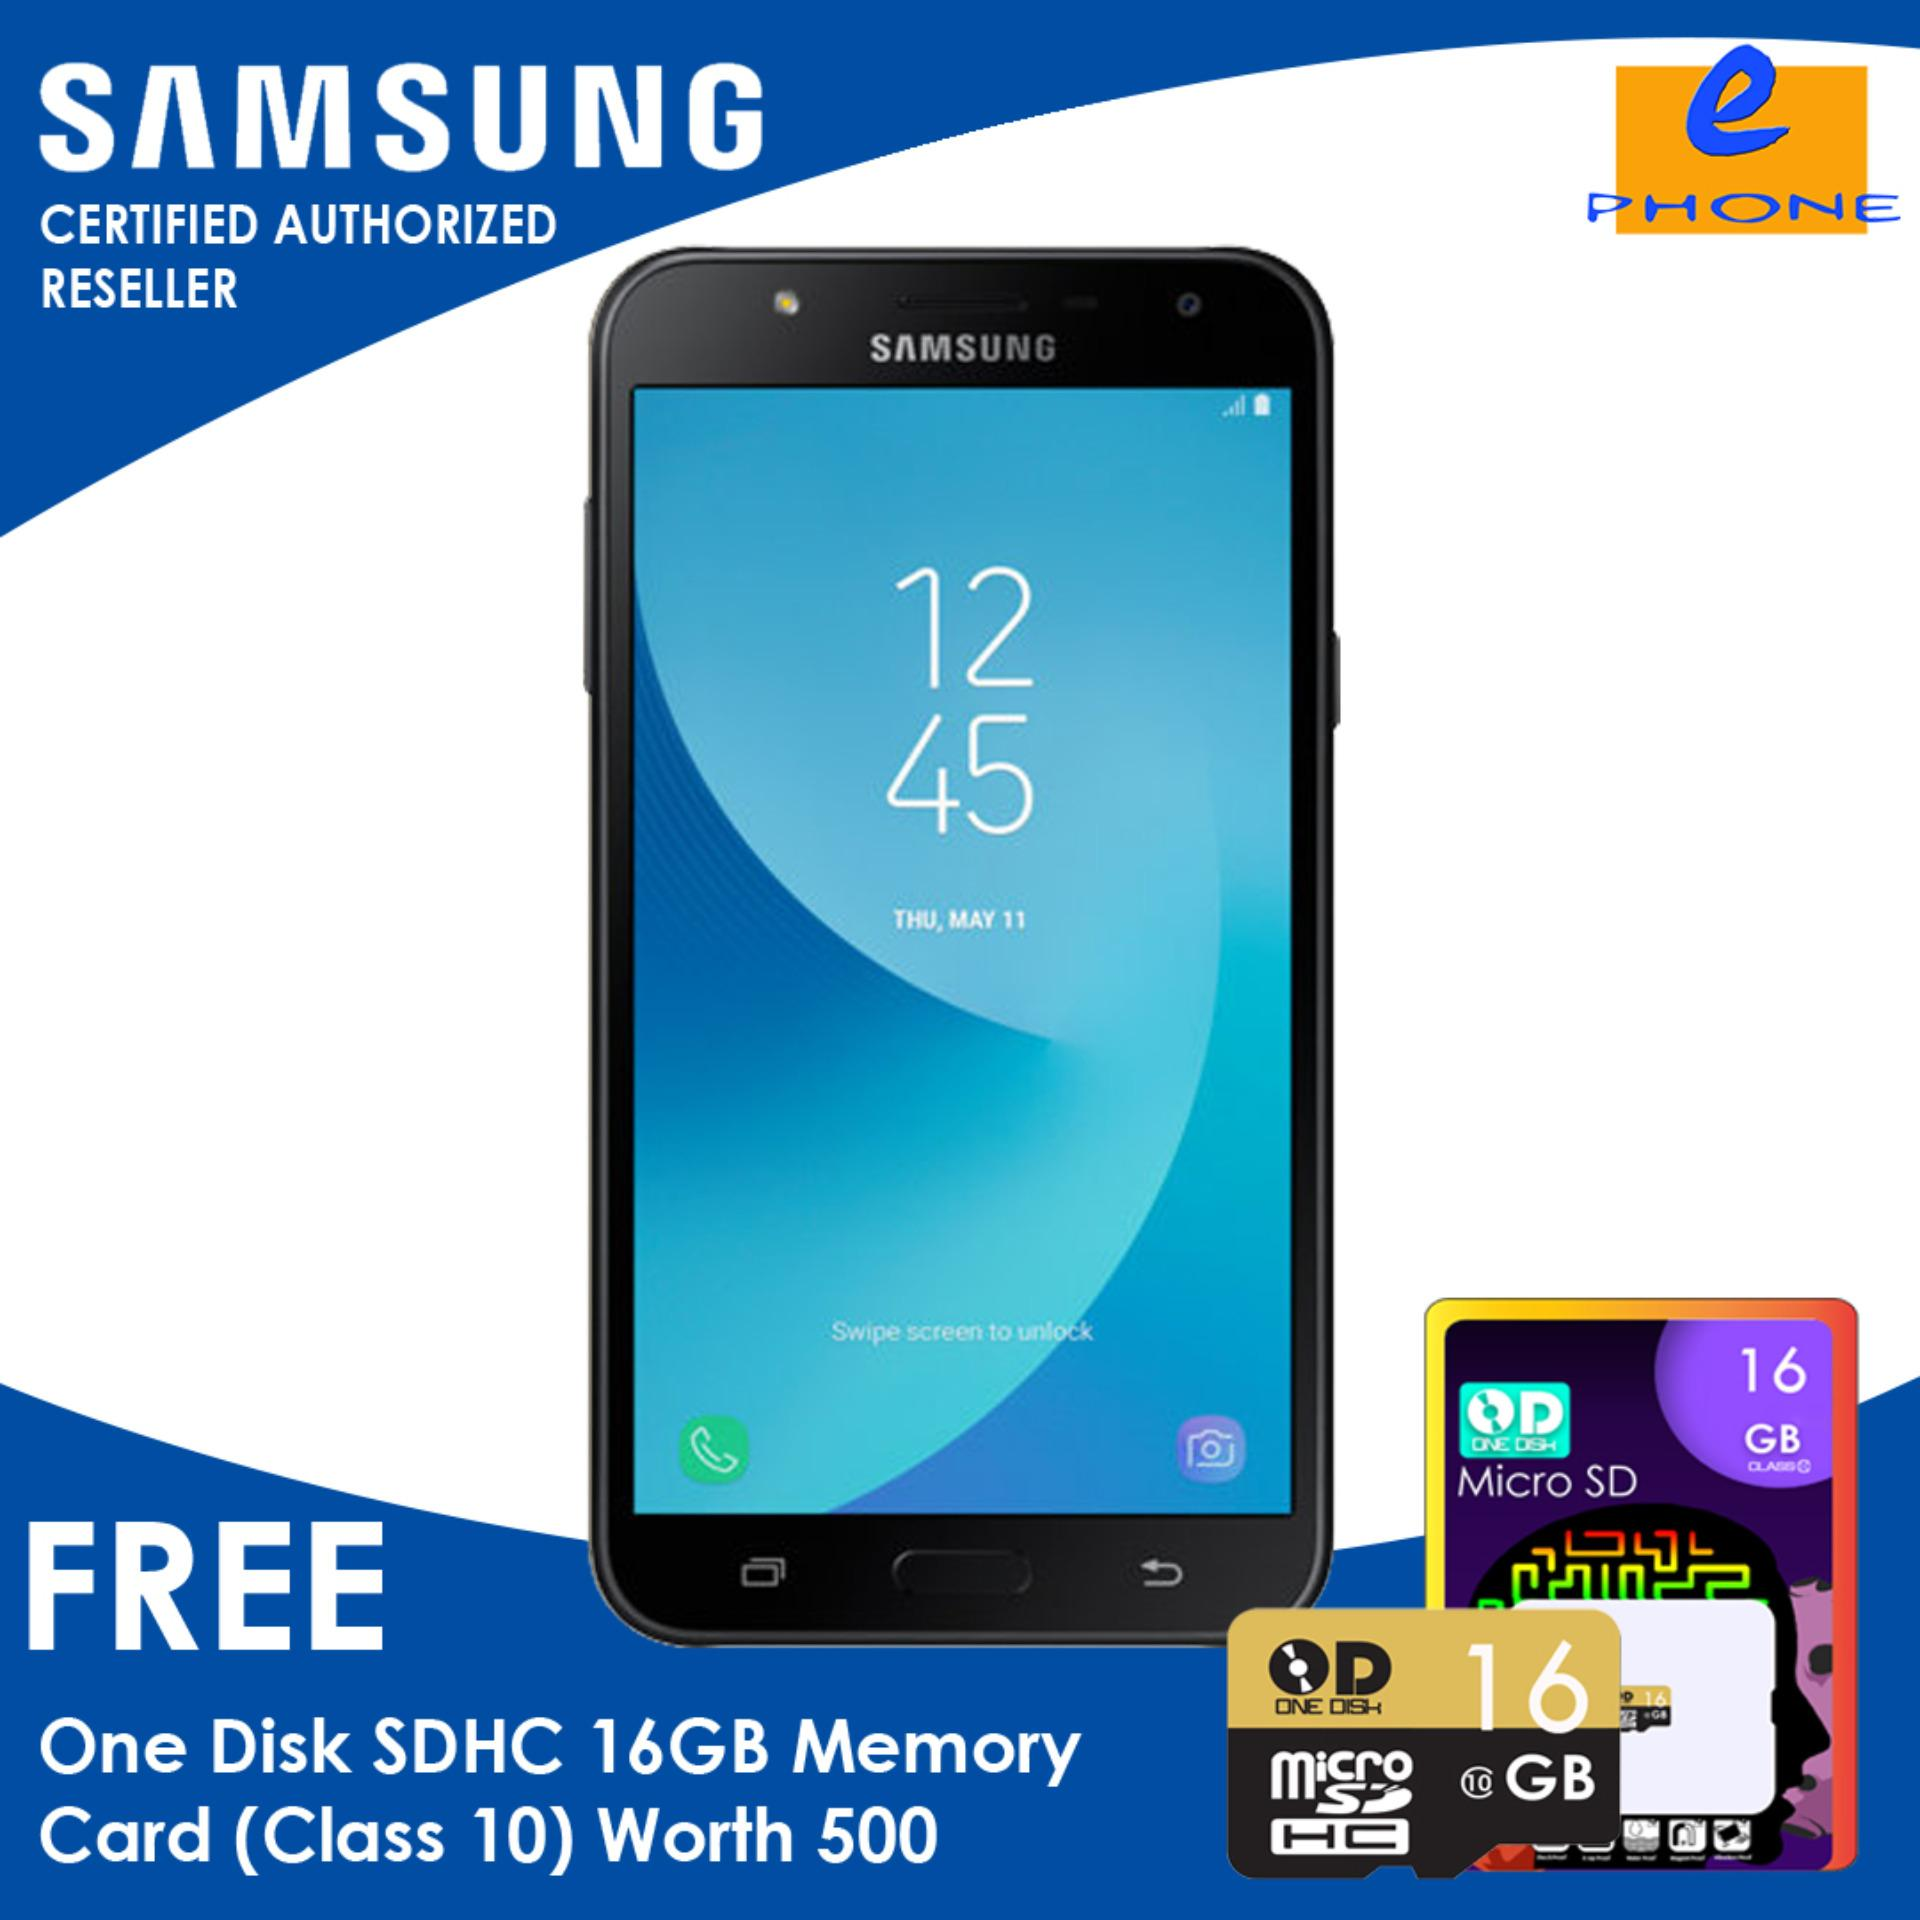 Gadgets For Every Budget 5000 9999 Oppo A83 3 32gb Free 7 Item Accessories Obral Samsung